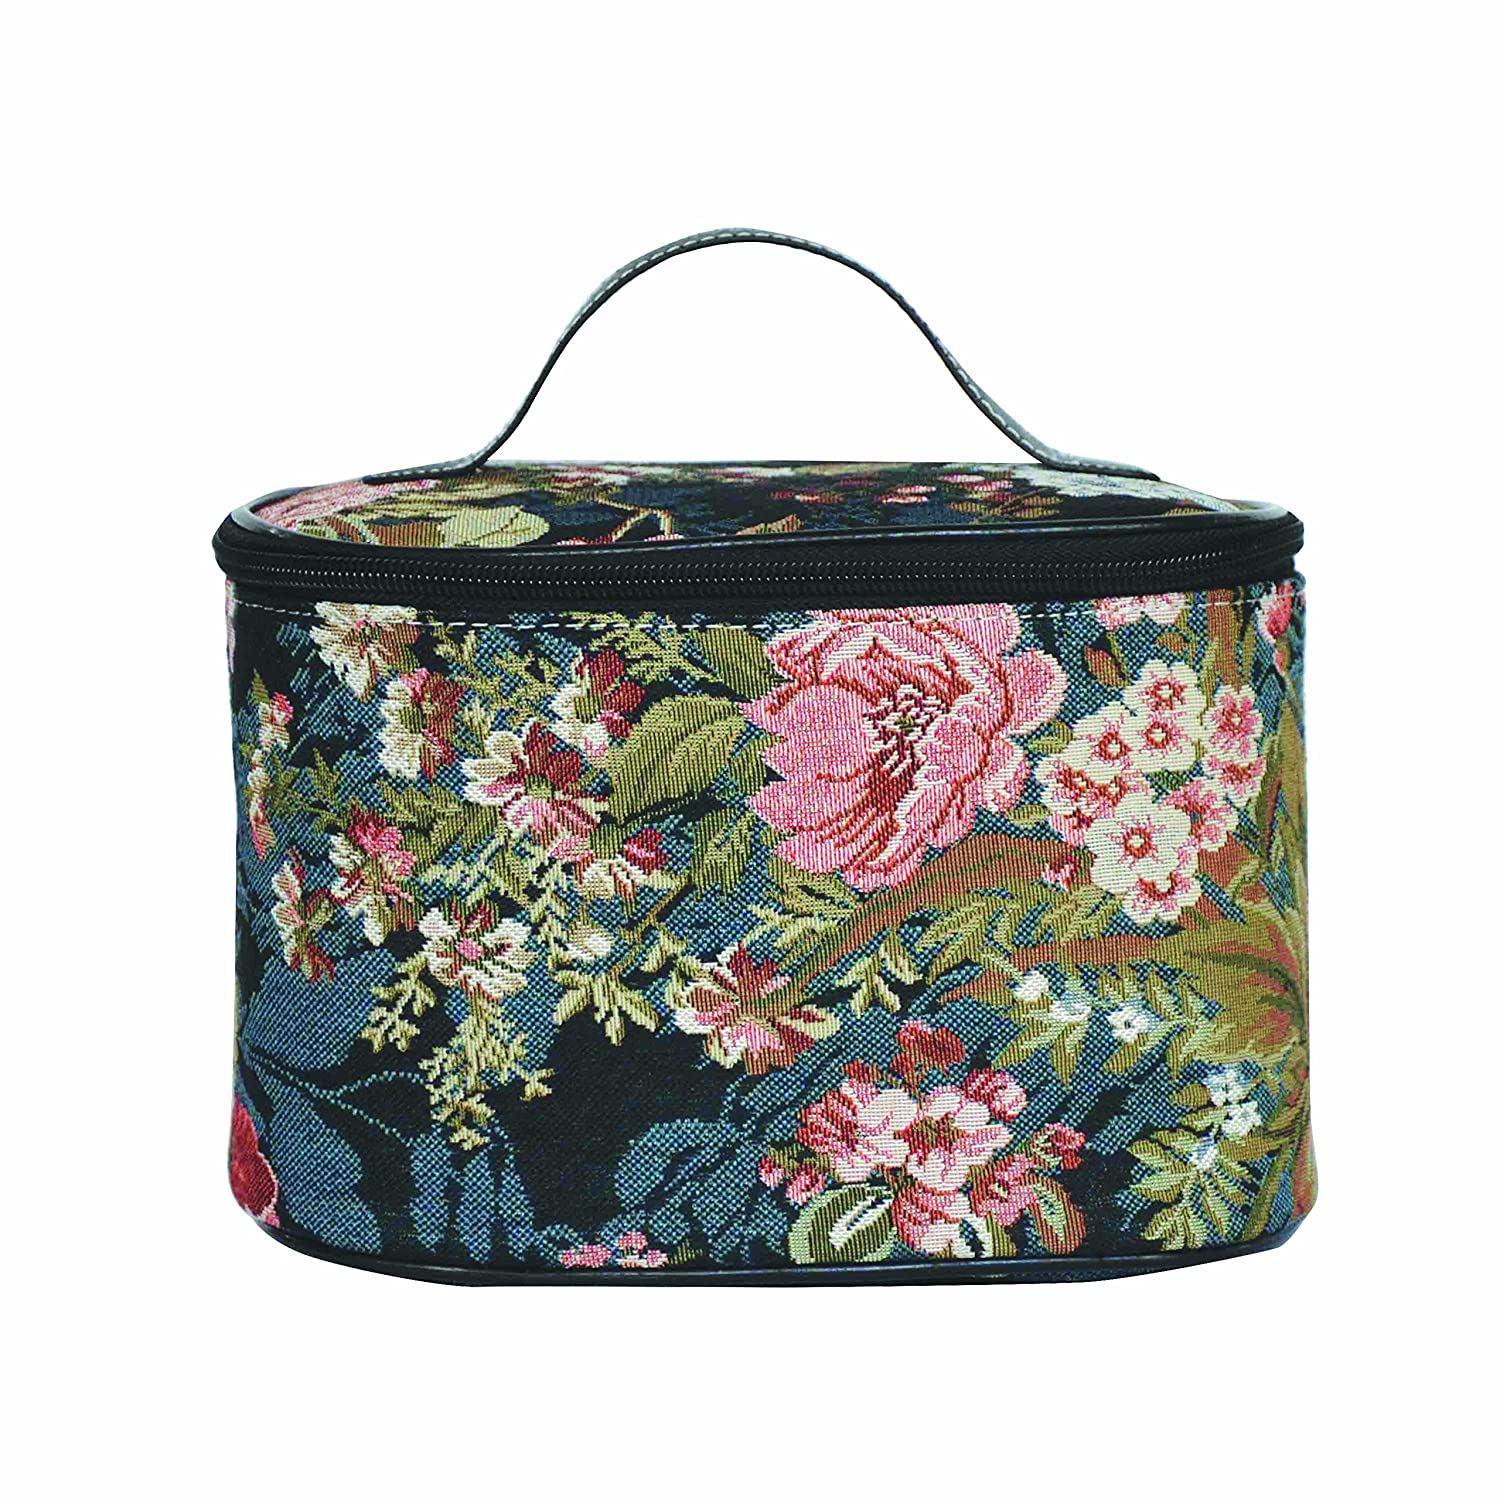 Signare Tapestry Toiletry Bag Makeup Organizer bag for Women with Peony Flower in Black Background Design (TOIL-PEO)